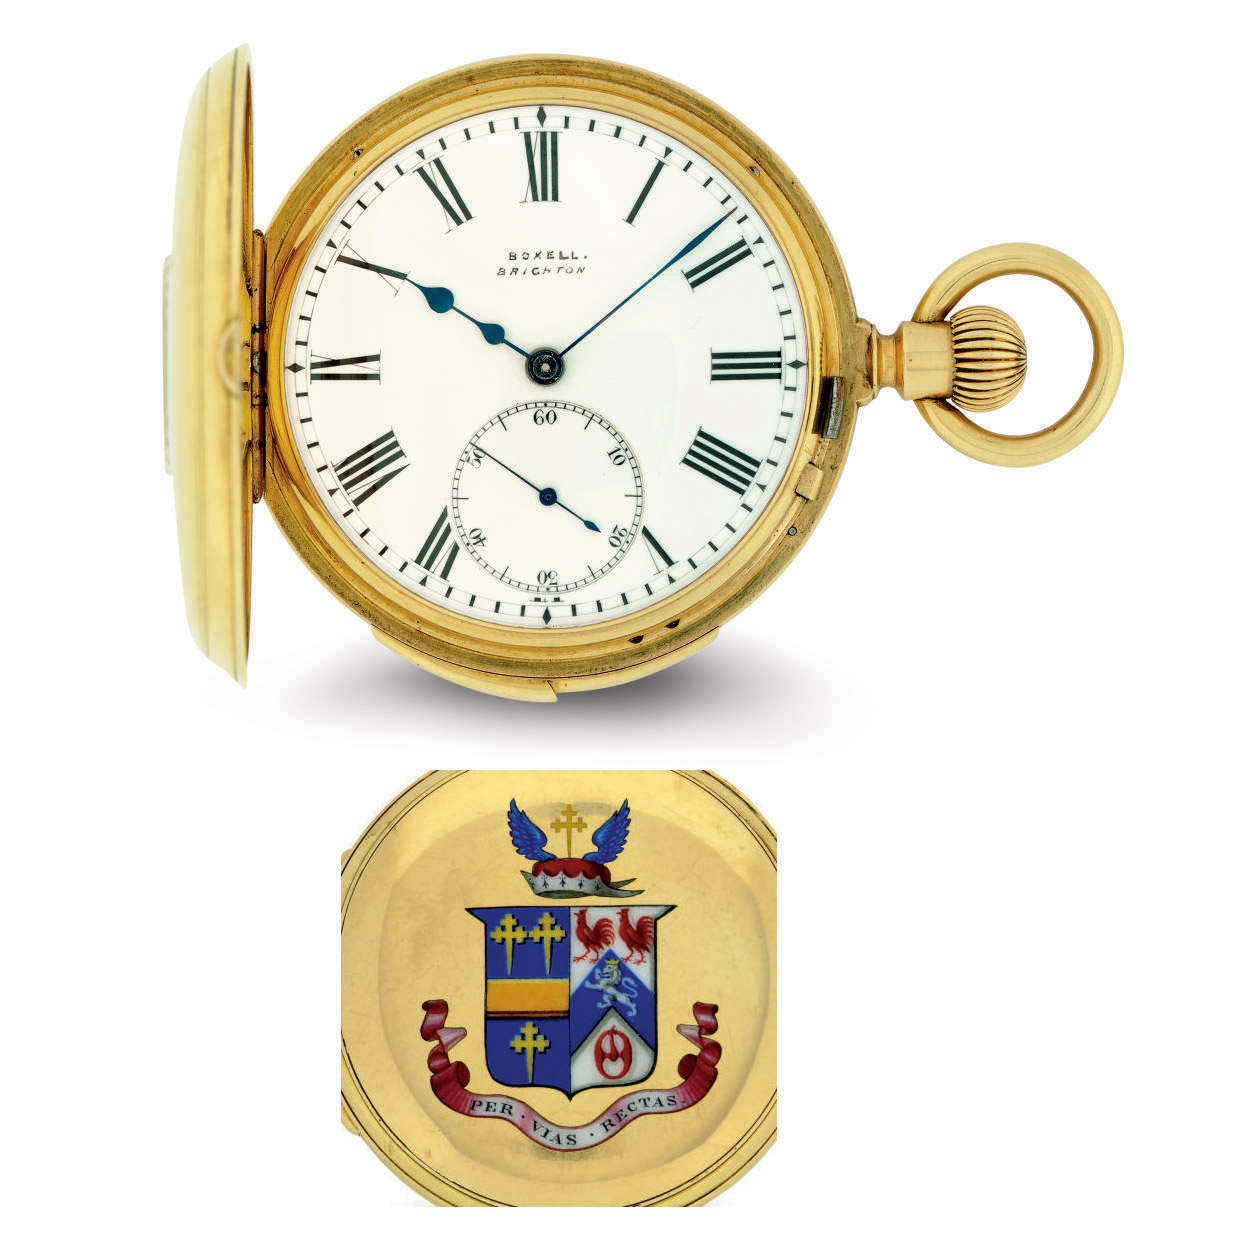 SWISS.  AN 18K GOLD AND ENAMEL MINUTE REPEATING HALF-HUNTER CASE POCKET WATCH